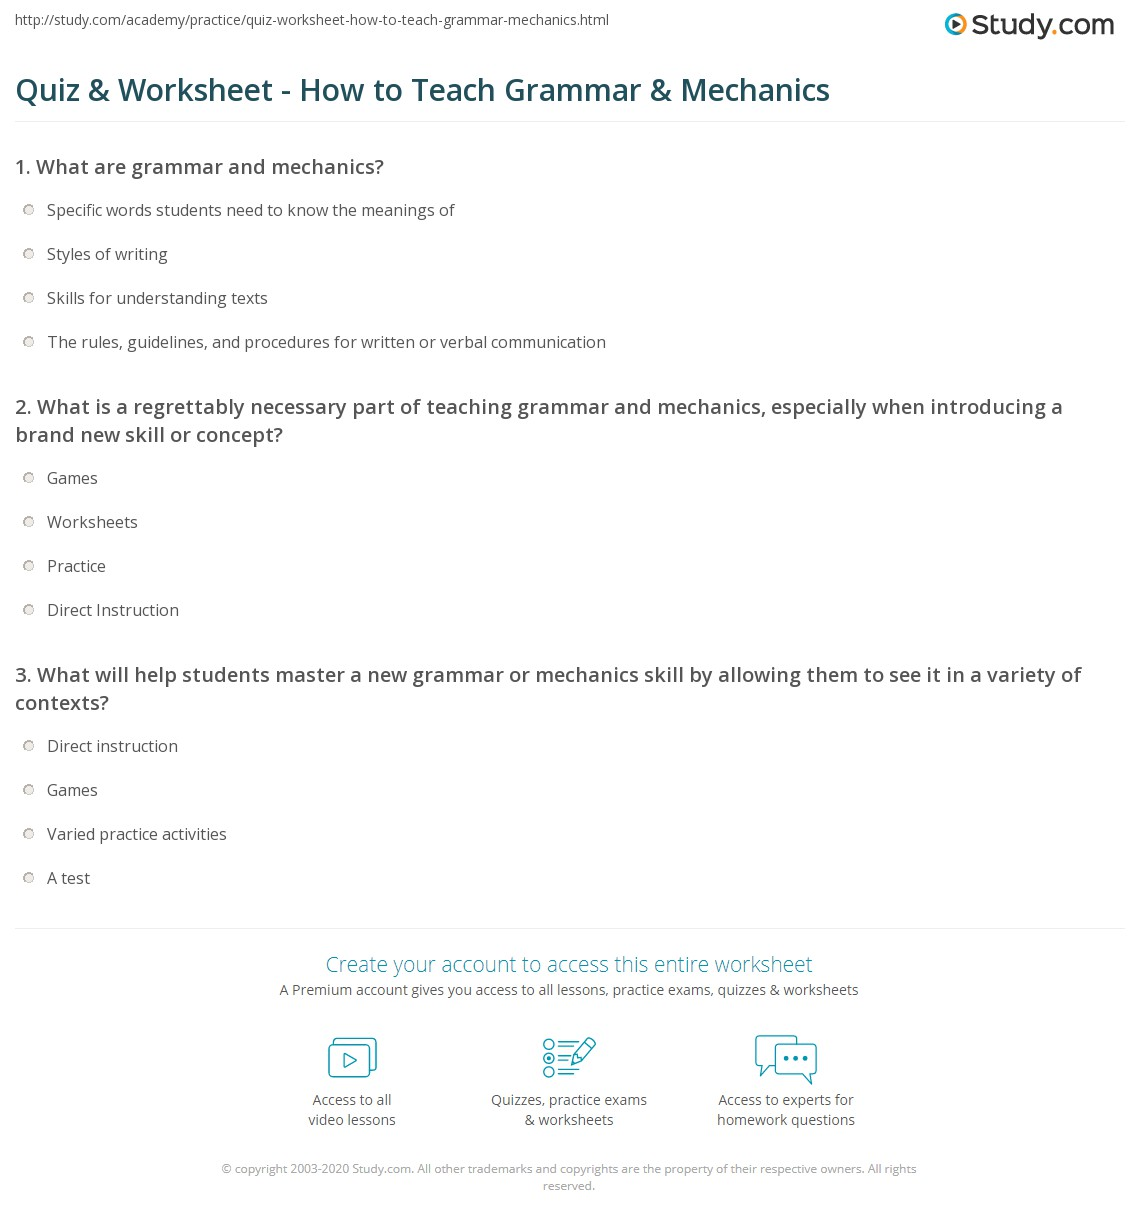 Printables Grammar Mechanics Worksheets grammar mechanics worksheets pichaglobal quiz amp worksheet how to teach study com